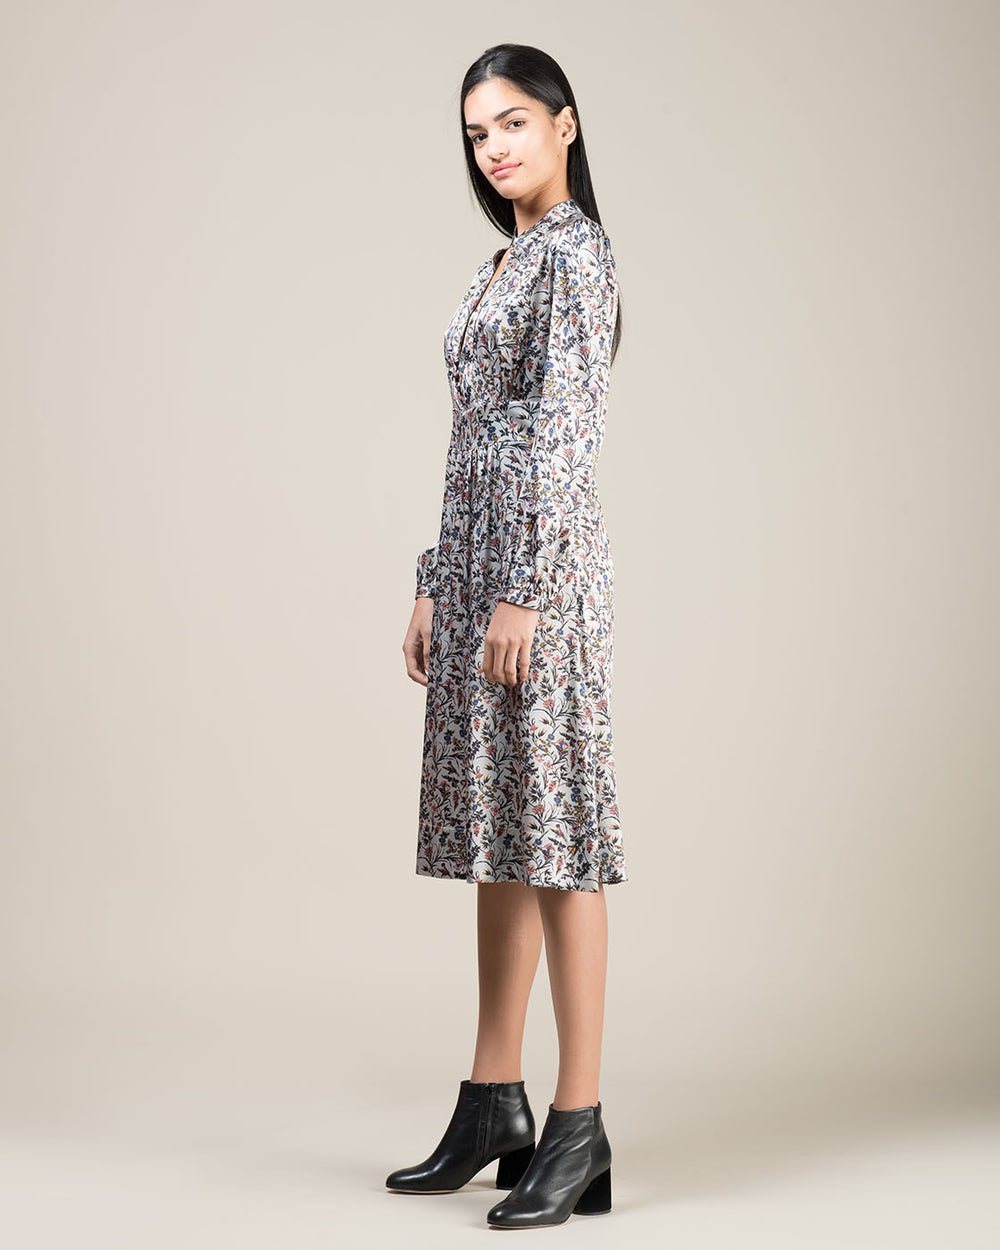 Grey Silk Dress with Micro Flower Pattern